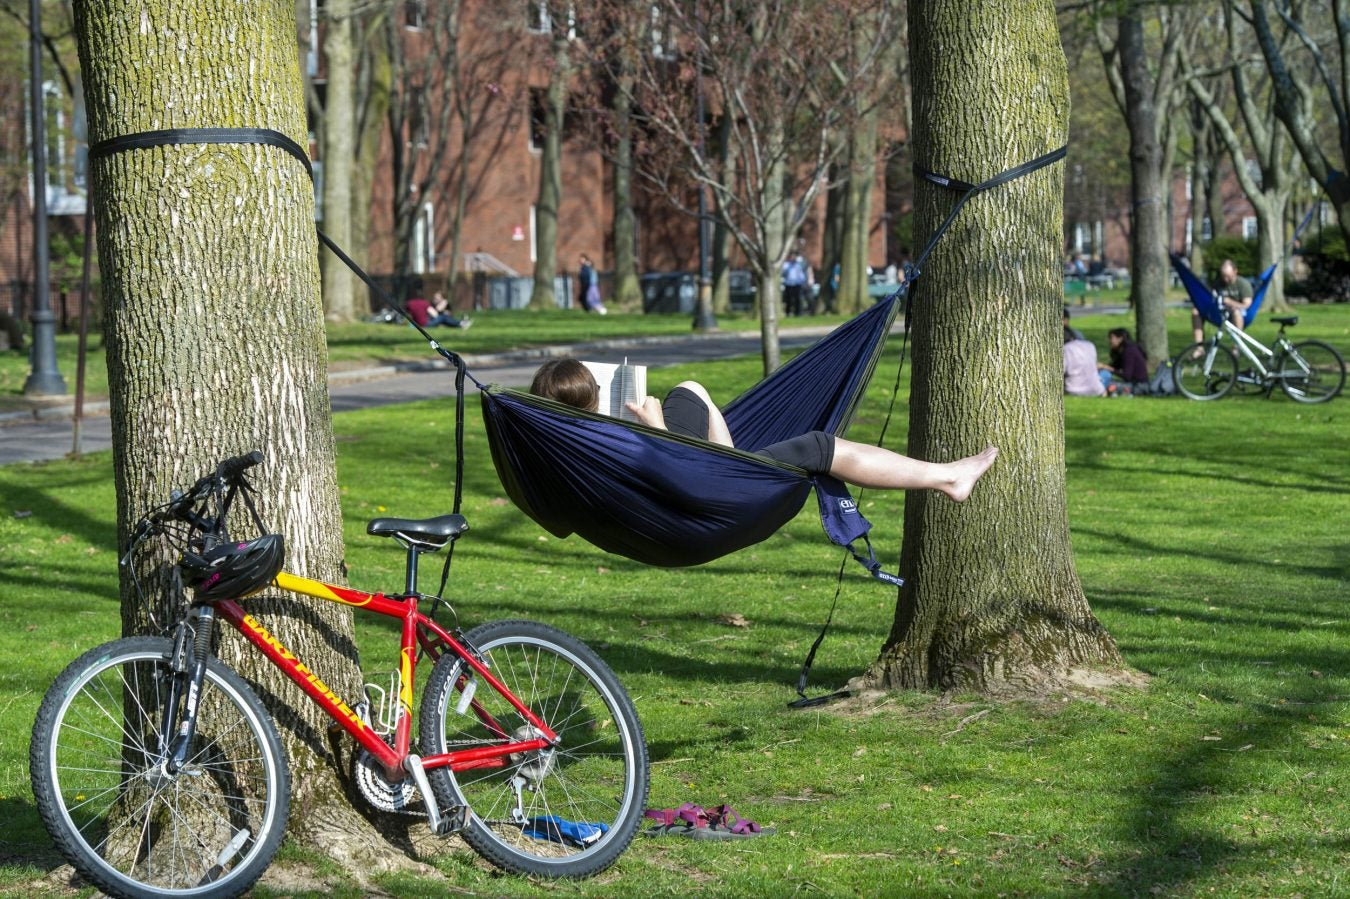 Melissa Moore relaxes in her hammock on the lawn next to Memorial Drive.